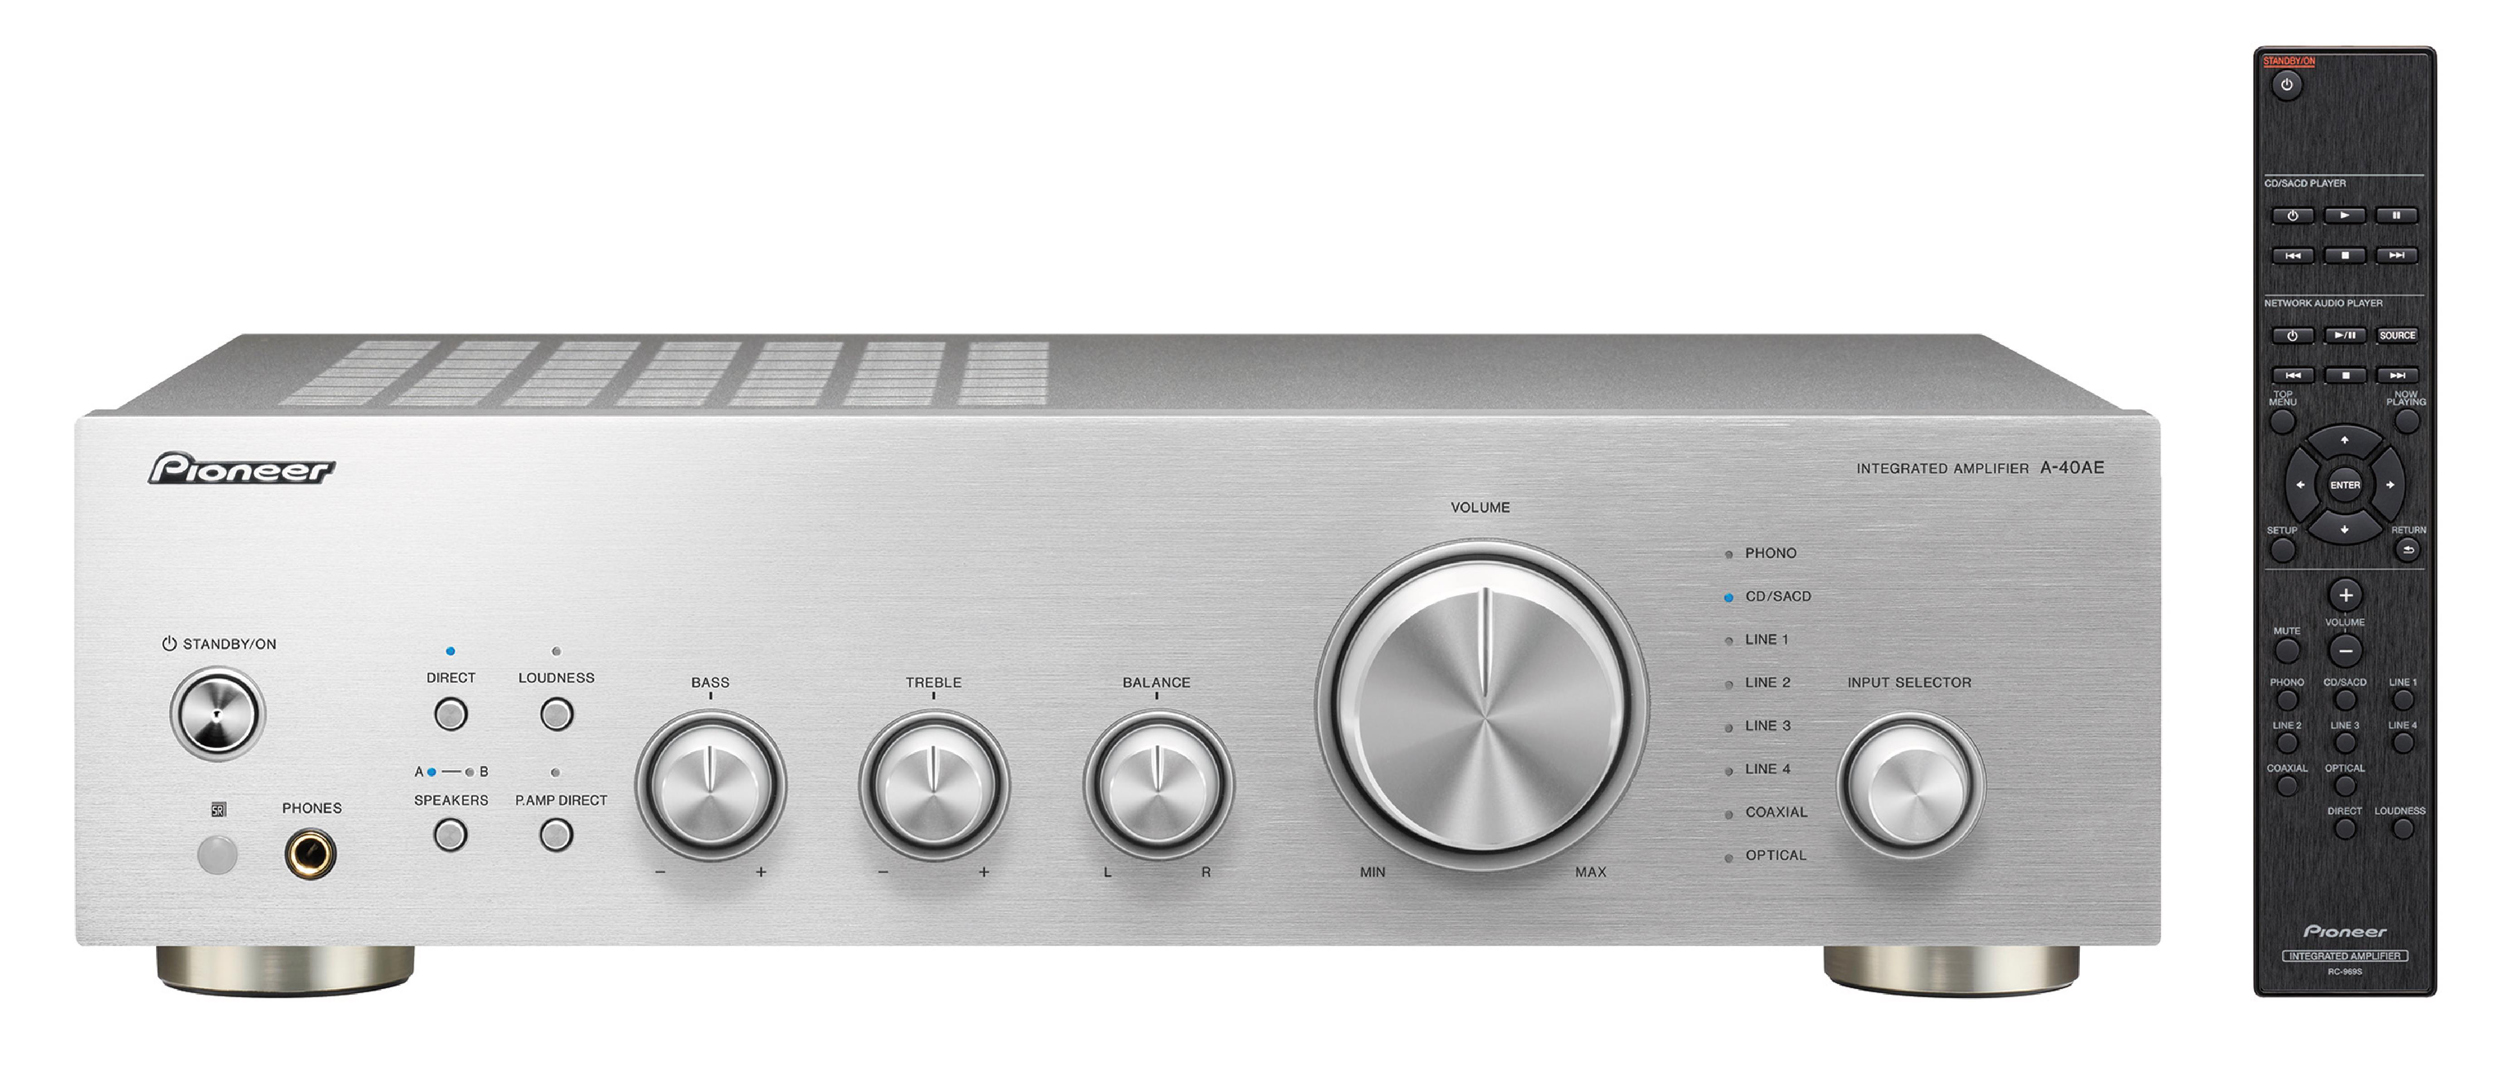 A-40AE-S, HIFI AMPLIFIER EQUAL, silver